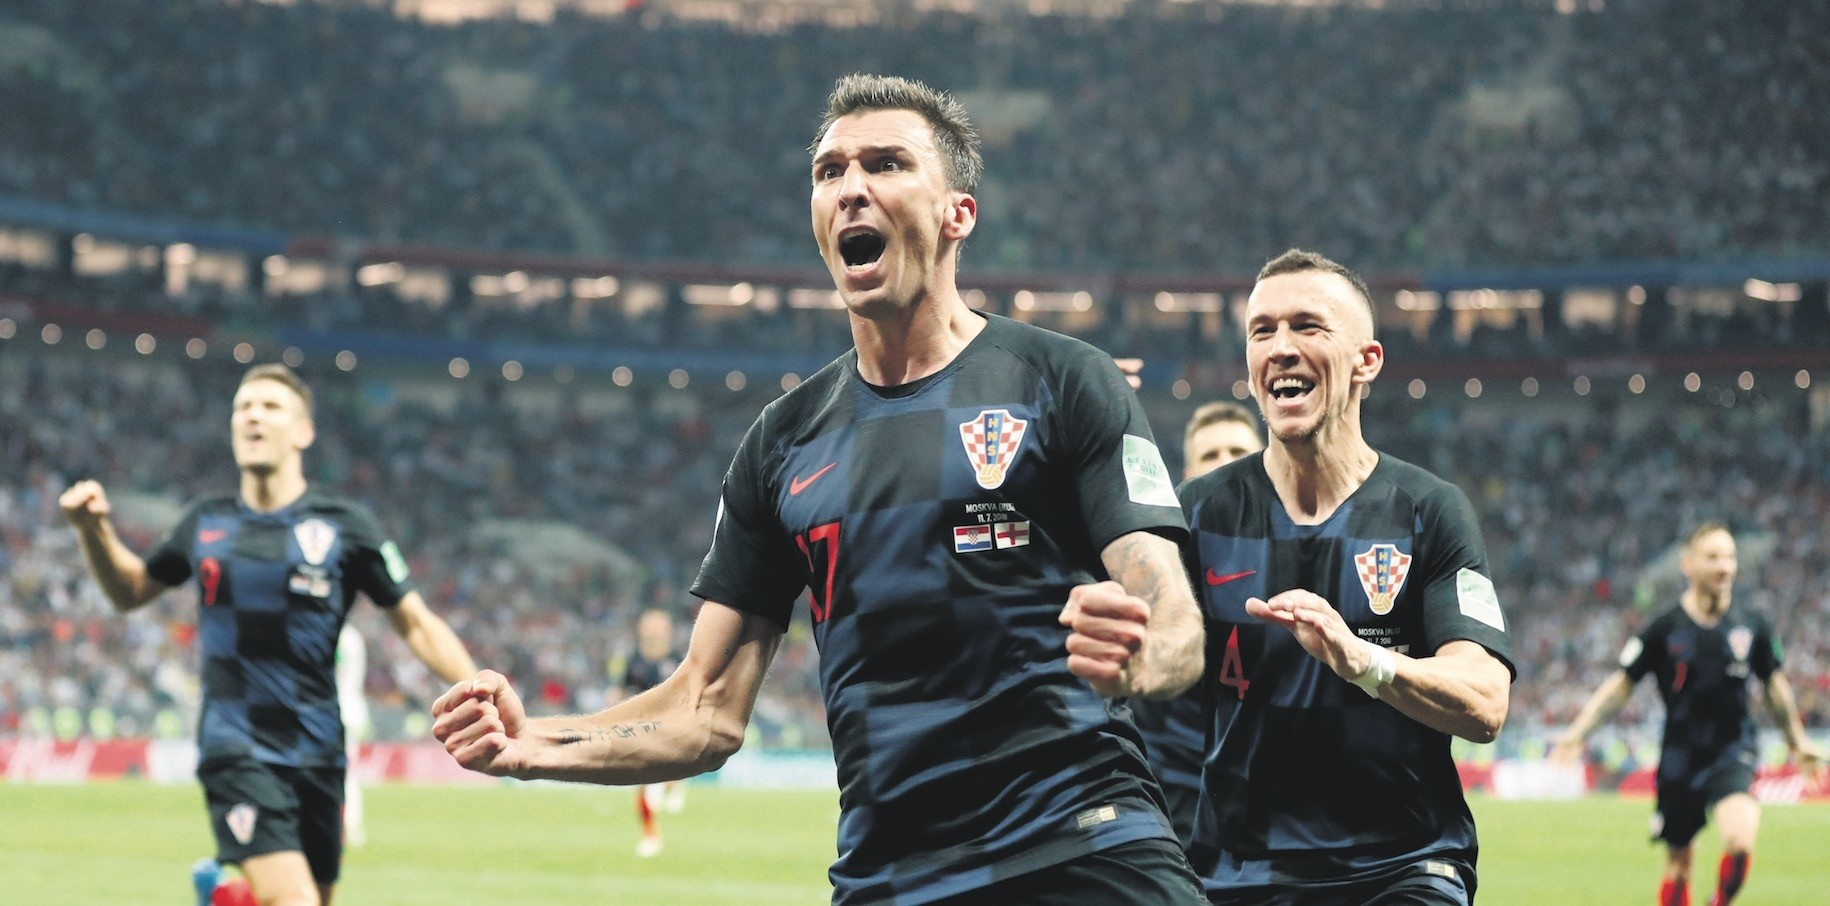 Croatiau2019s Mario Mandzukic celebrates after scoring his sideu2019s second goal during the semifinal match against England on July 11.